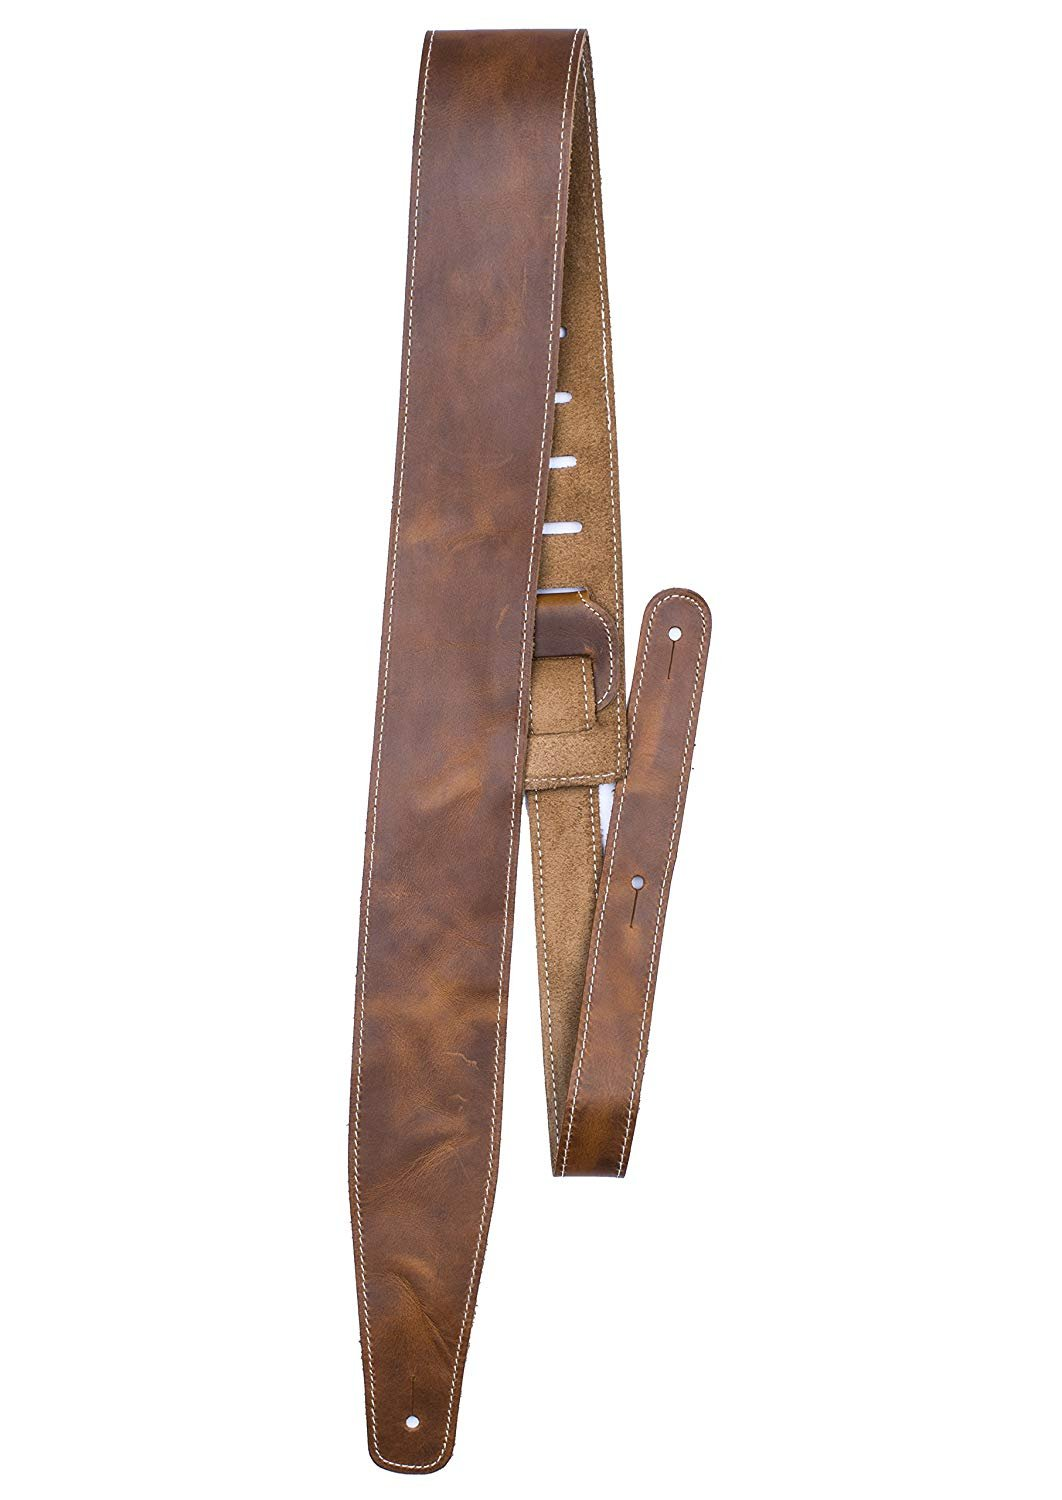 2.5 Oil Leather Series Tan Gtr Strap